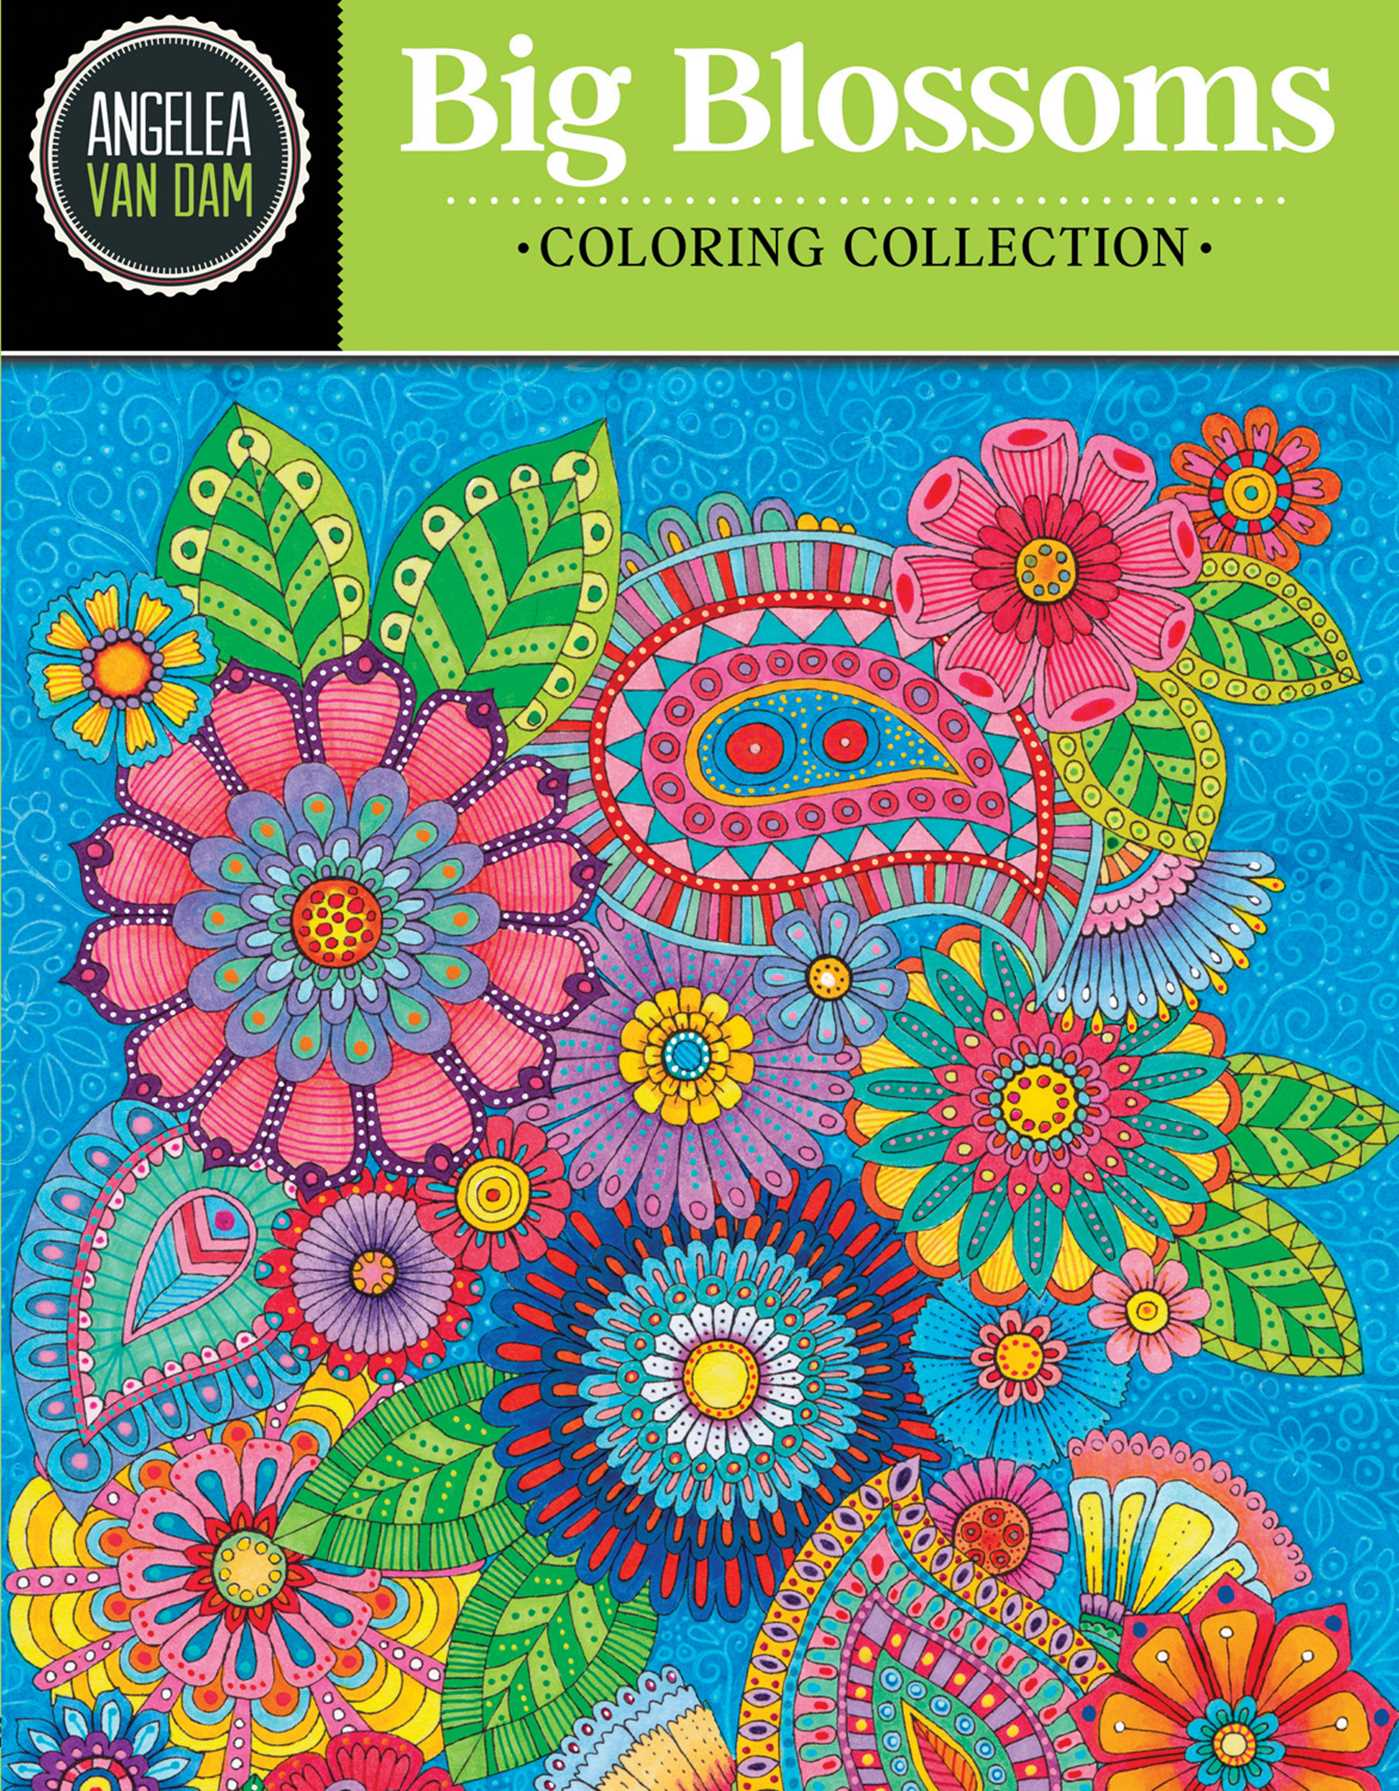 Book Cover Image Jpg Hello Angel Big Blossoms Coloring Collection